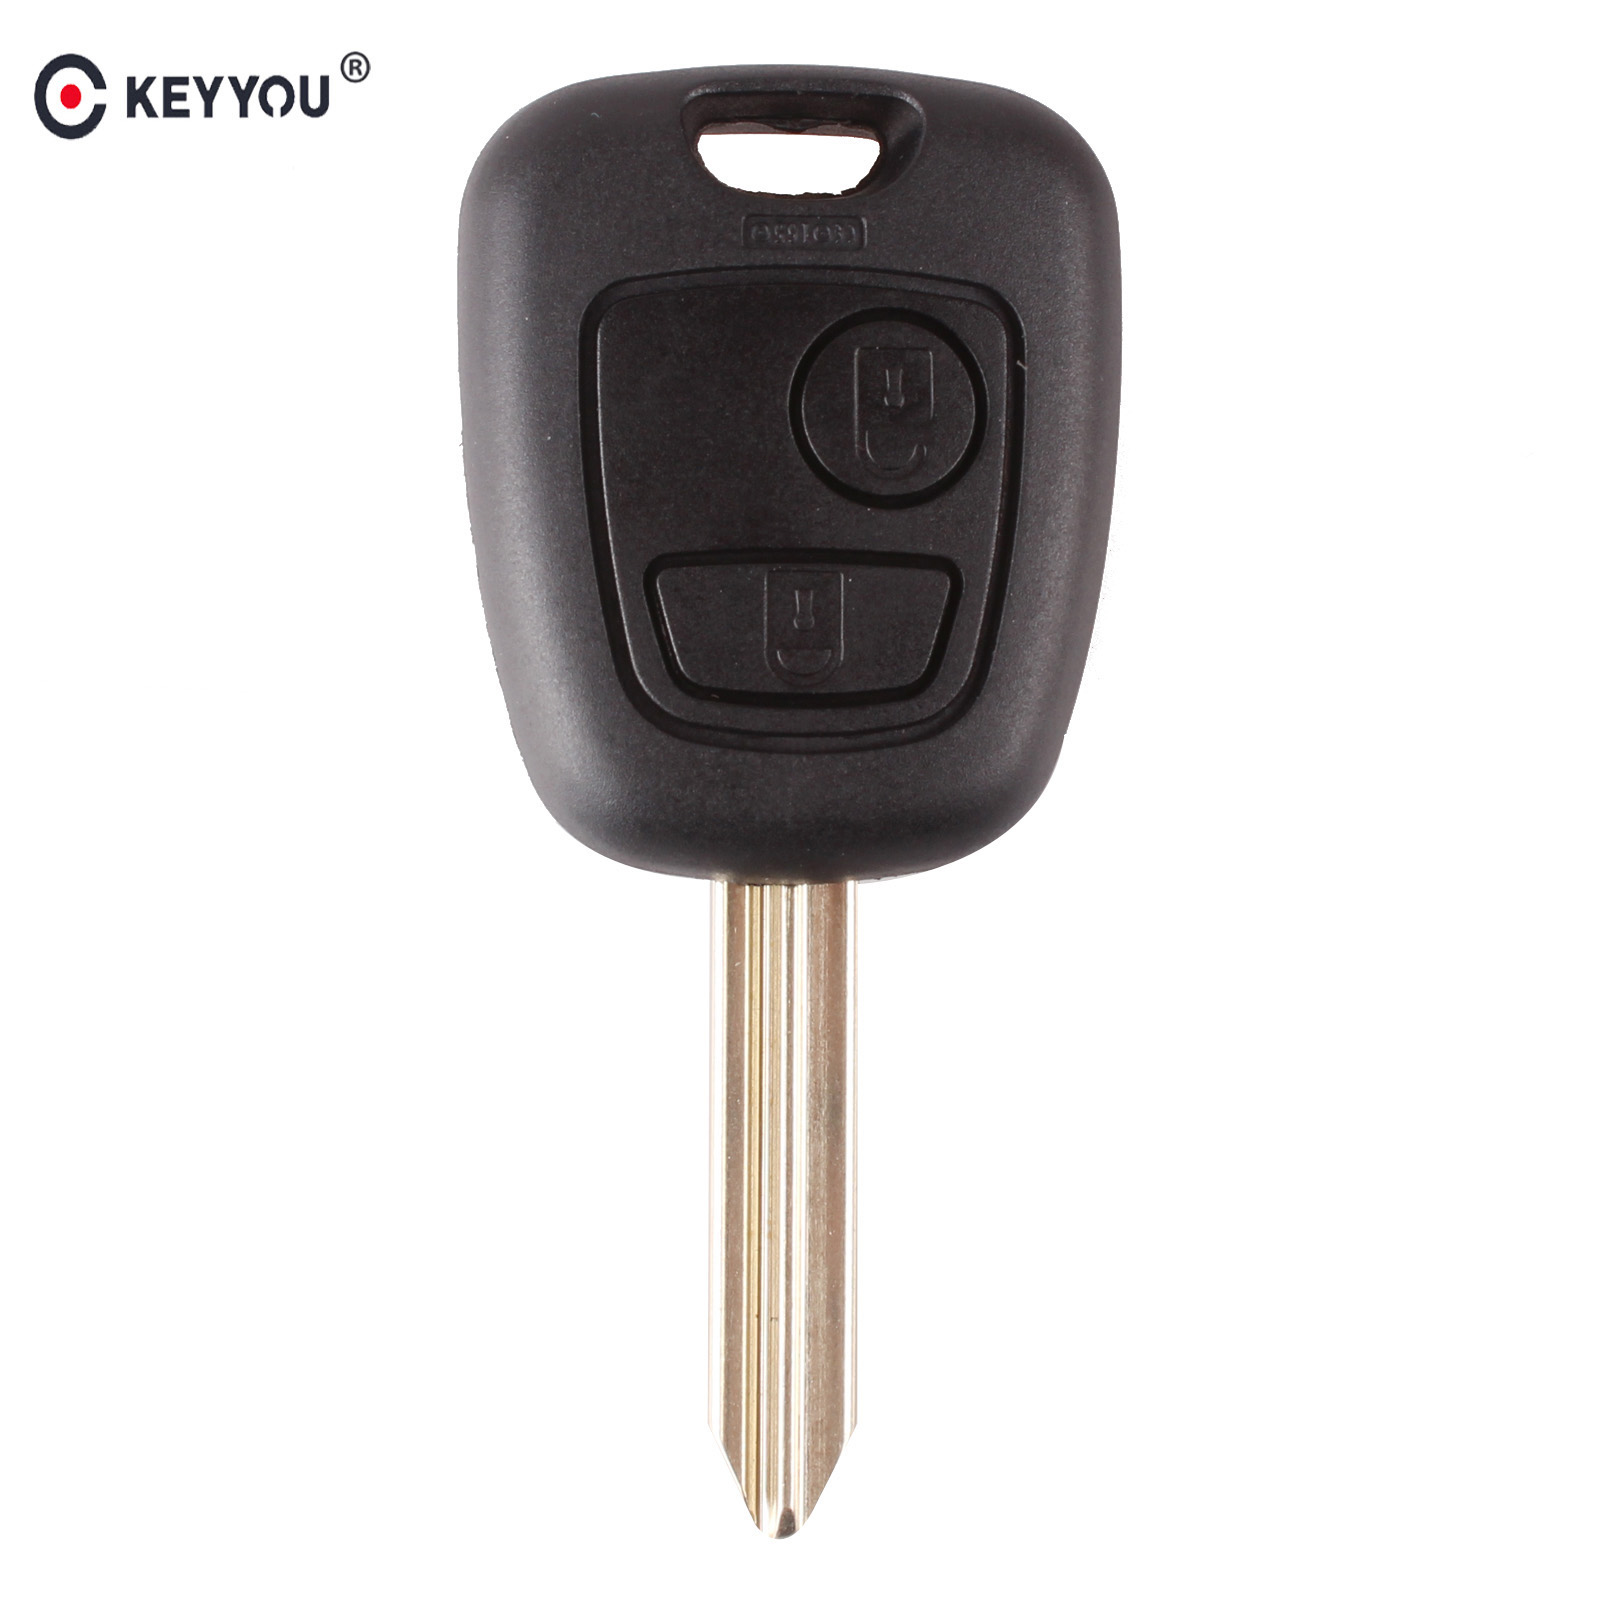 keyyou-car-key-case-fob-for-citroen-c1-c2-c3-saxo-xsara-picasso-berlingo-2-button-remote-key-fob